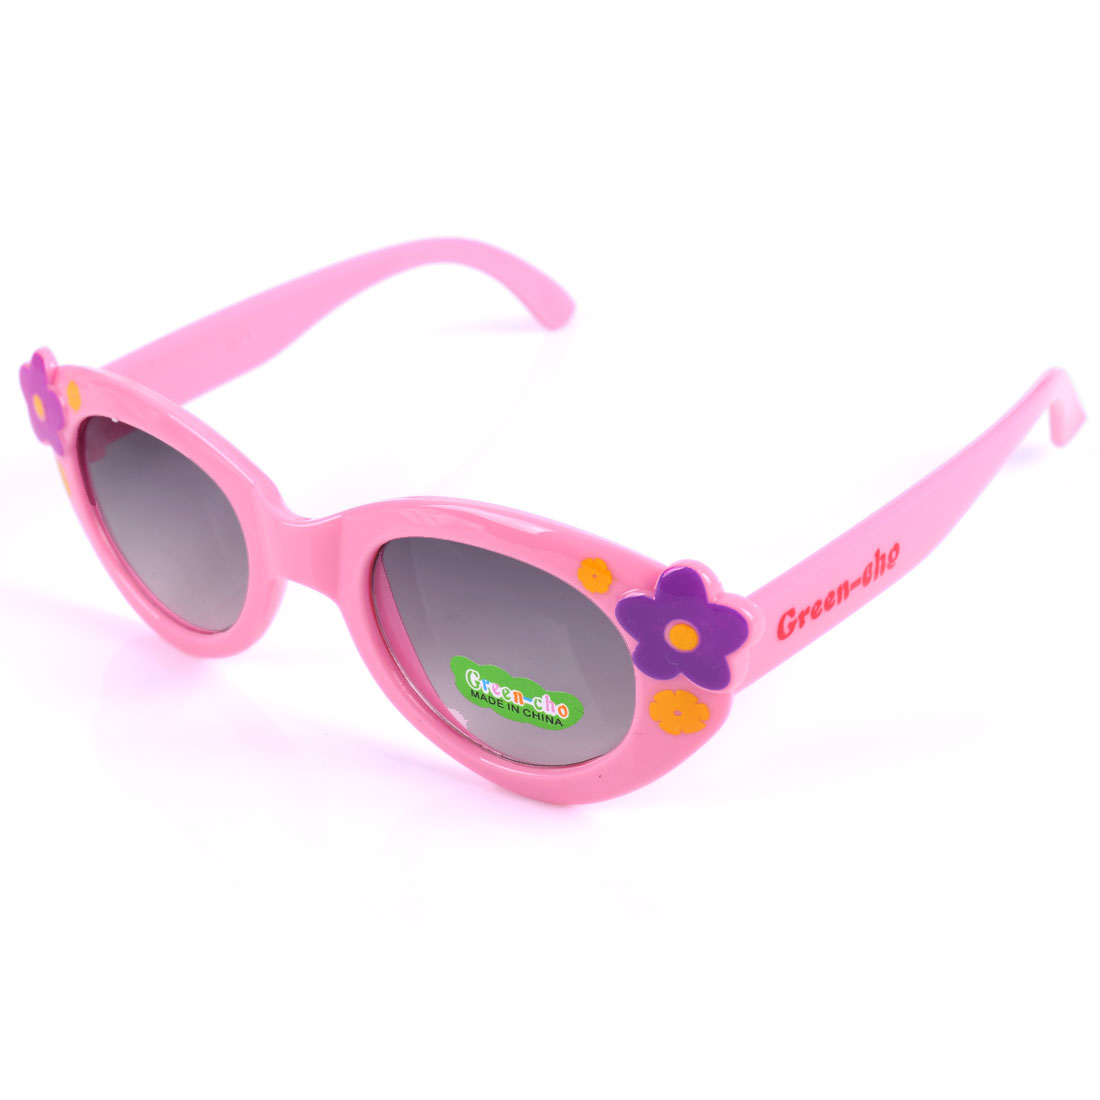 Girls Contrast Color Plastic Flower Sweet Sunglasses Pink